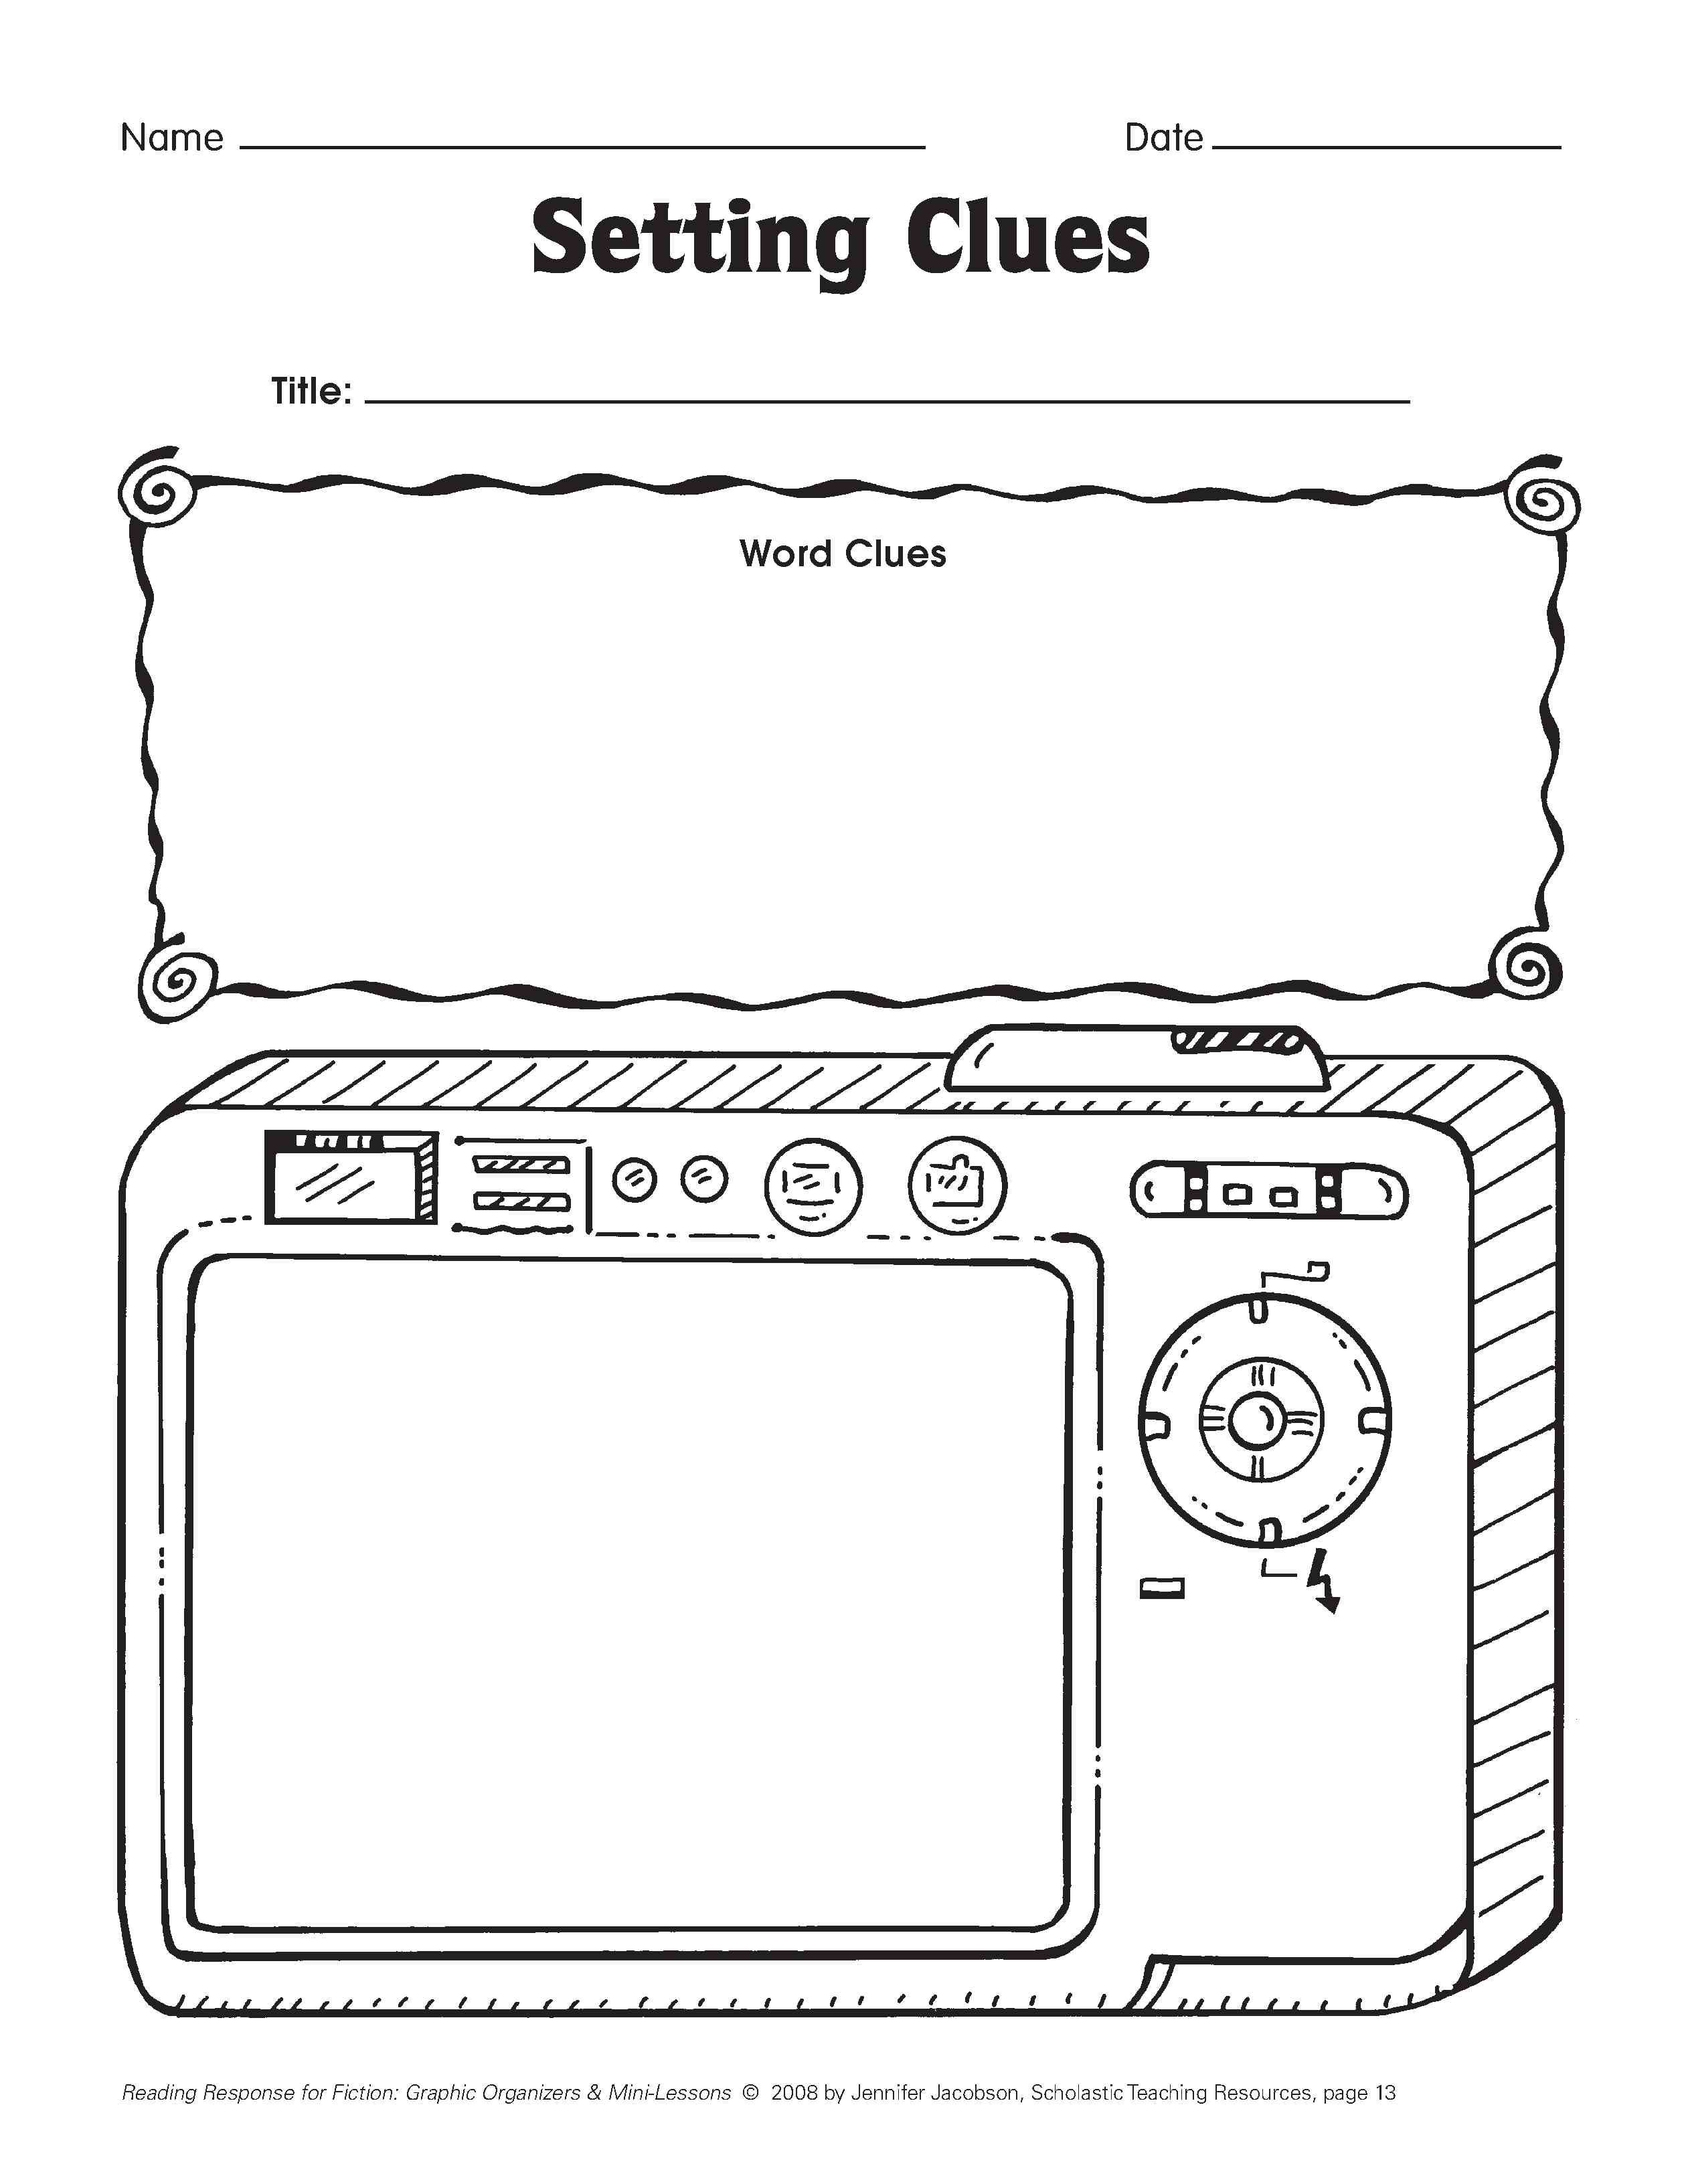 Worksheets Scholastic Teaching Resources Worksheets five minute reading responses scholastic com free printable on teacher to ideas in the top teaching blog scholastic